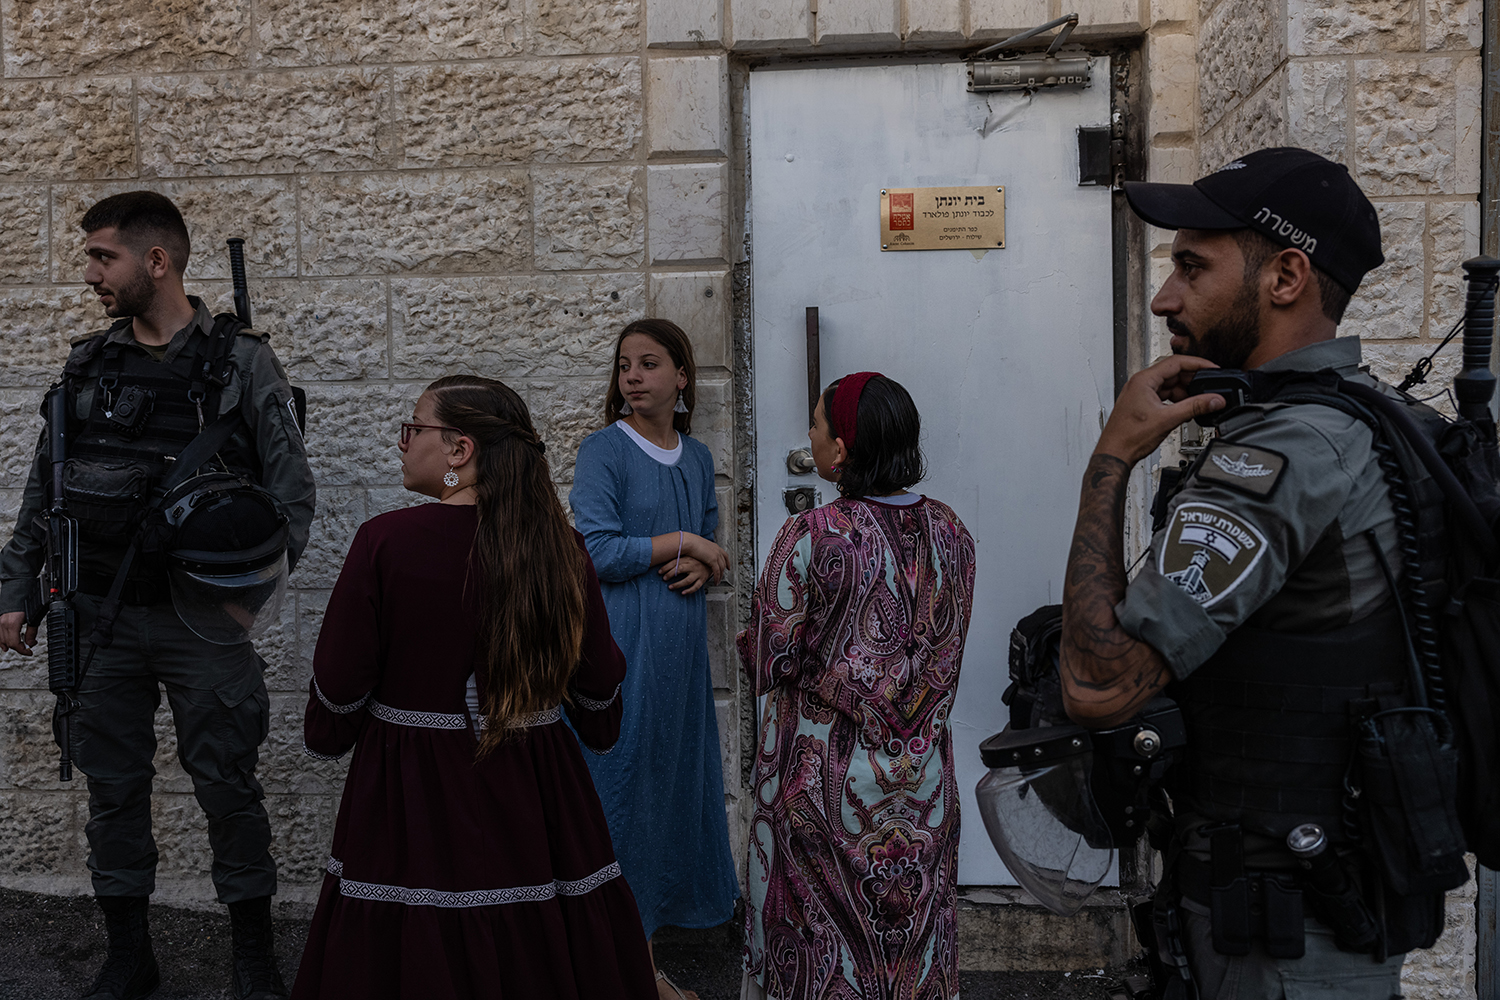 Jewish settlers who have moved to the Batan al-Hawa neighborhood are seen under police protection on June 14.